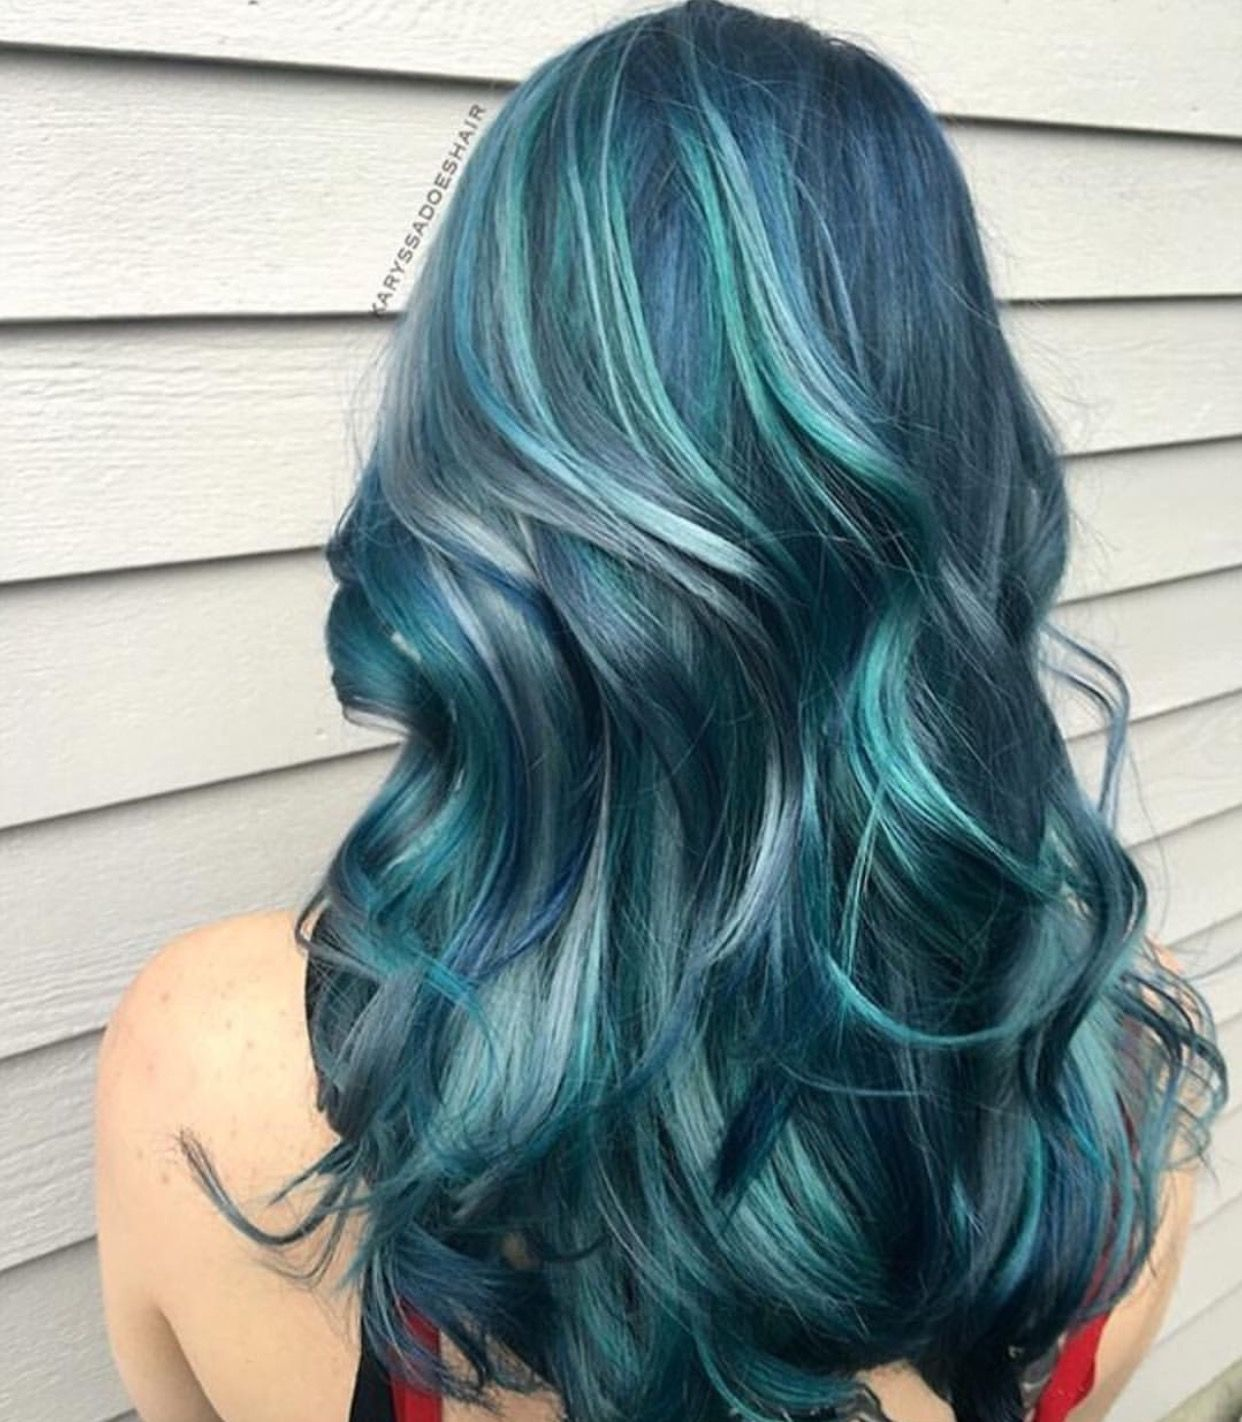 Icy Blue Teal Silver Mermaid Hair Hair Styles Mermaid Hair Color Teal Hair